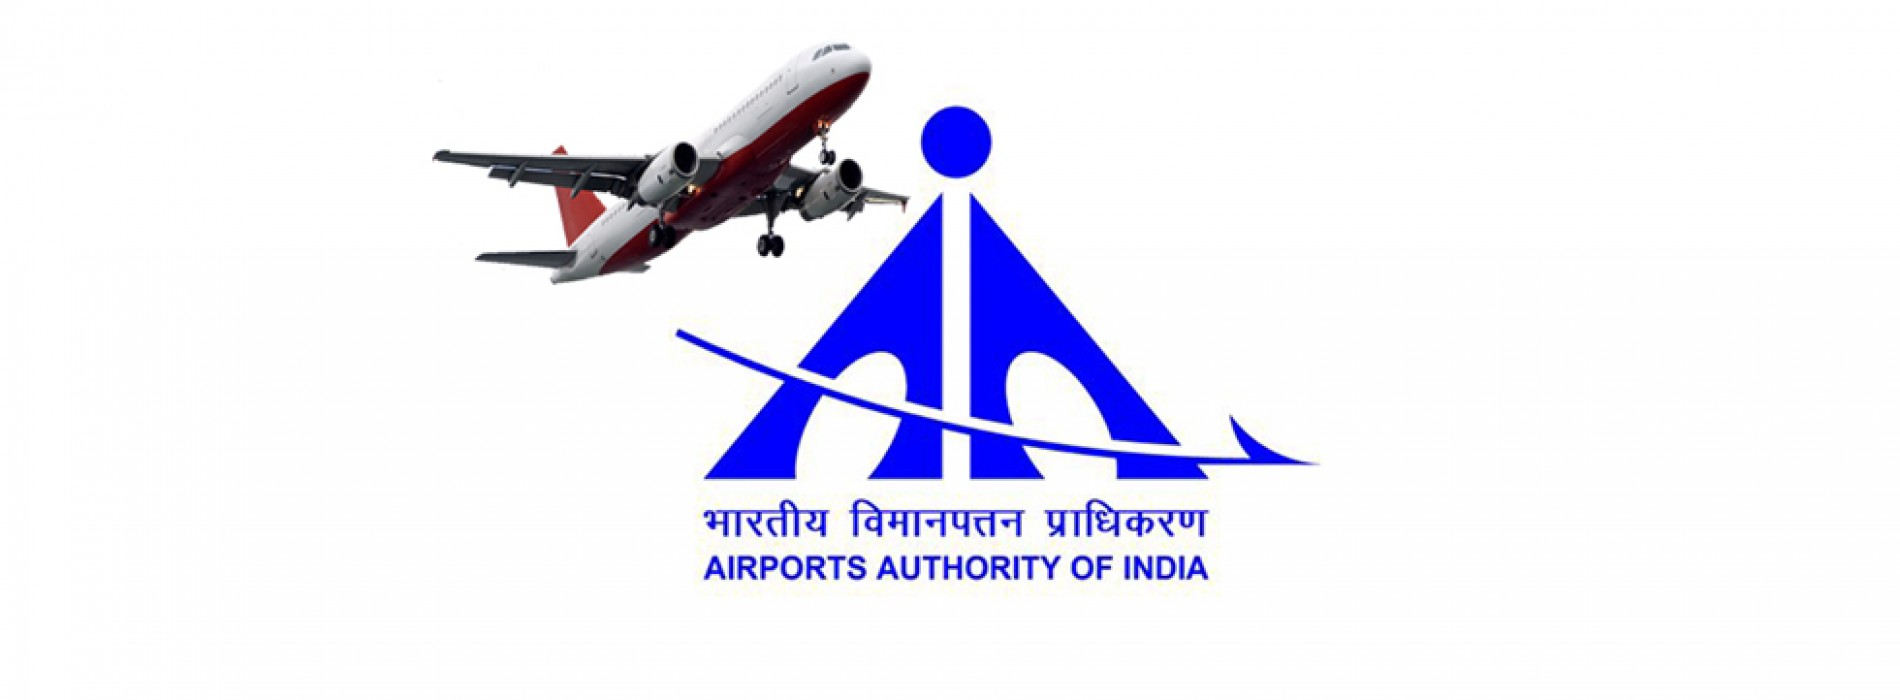 AAI to take up development work at different city airports